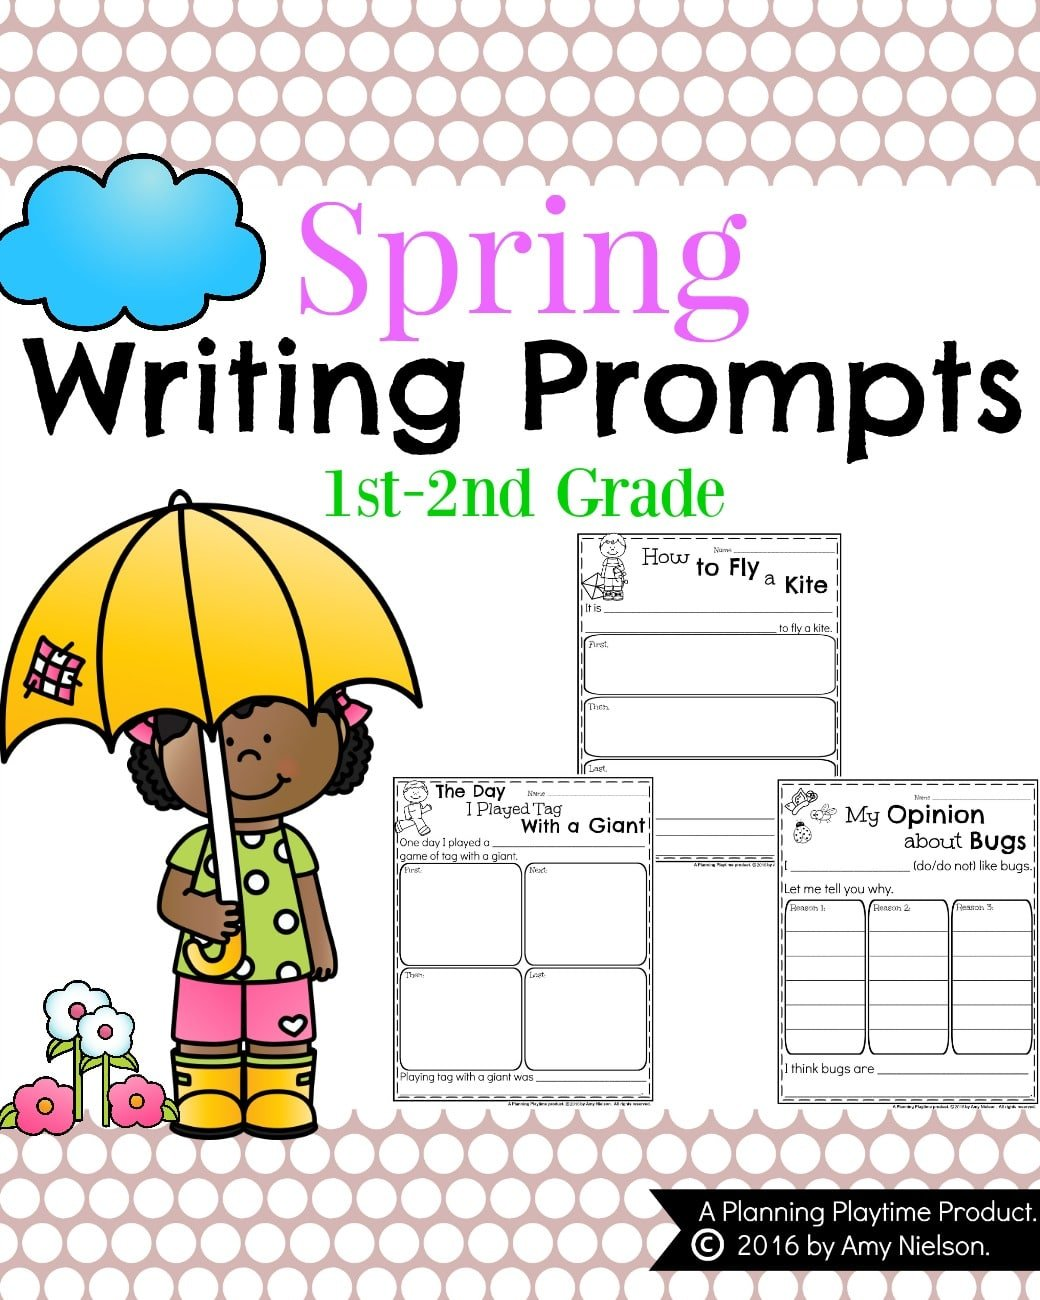 spring writing prompts first grade Find this pin and more on first grade-spring by aliciakbeythan first grade easter bunnies draw and write stories art archives spring writing prompts.